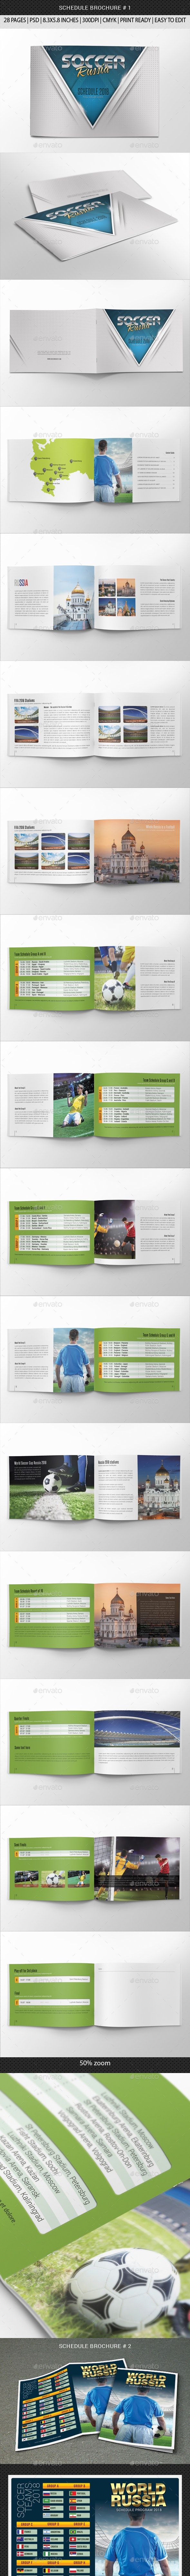 Russia World Soccer Cup 2018 Schedule Bundle - Brochures Print Templates